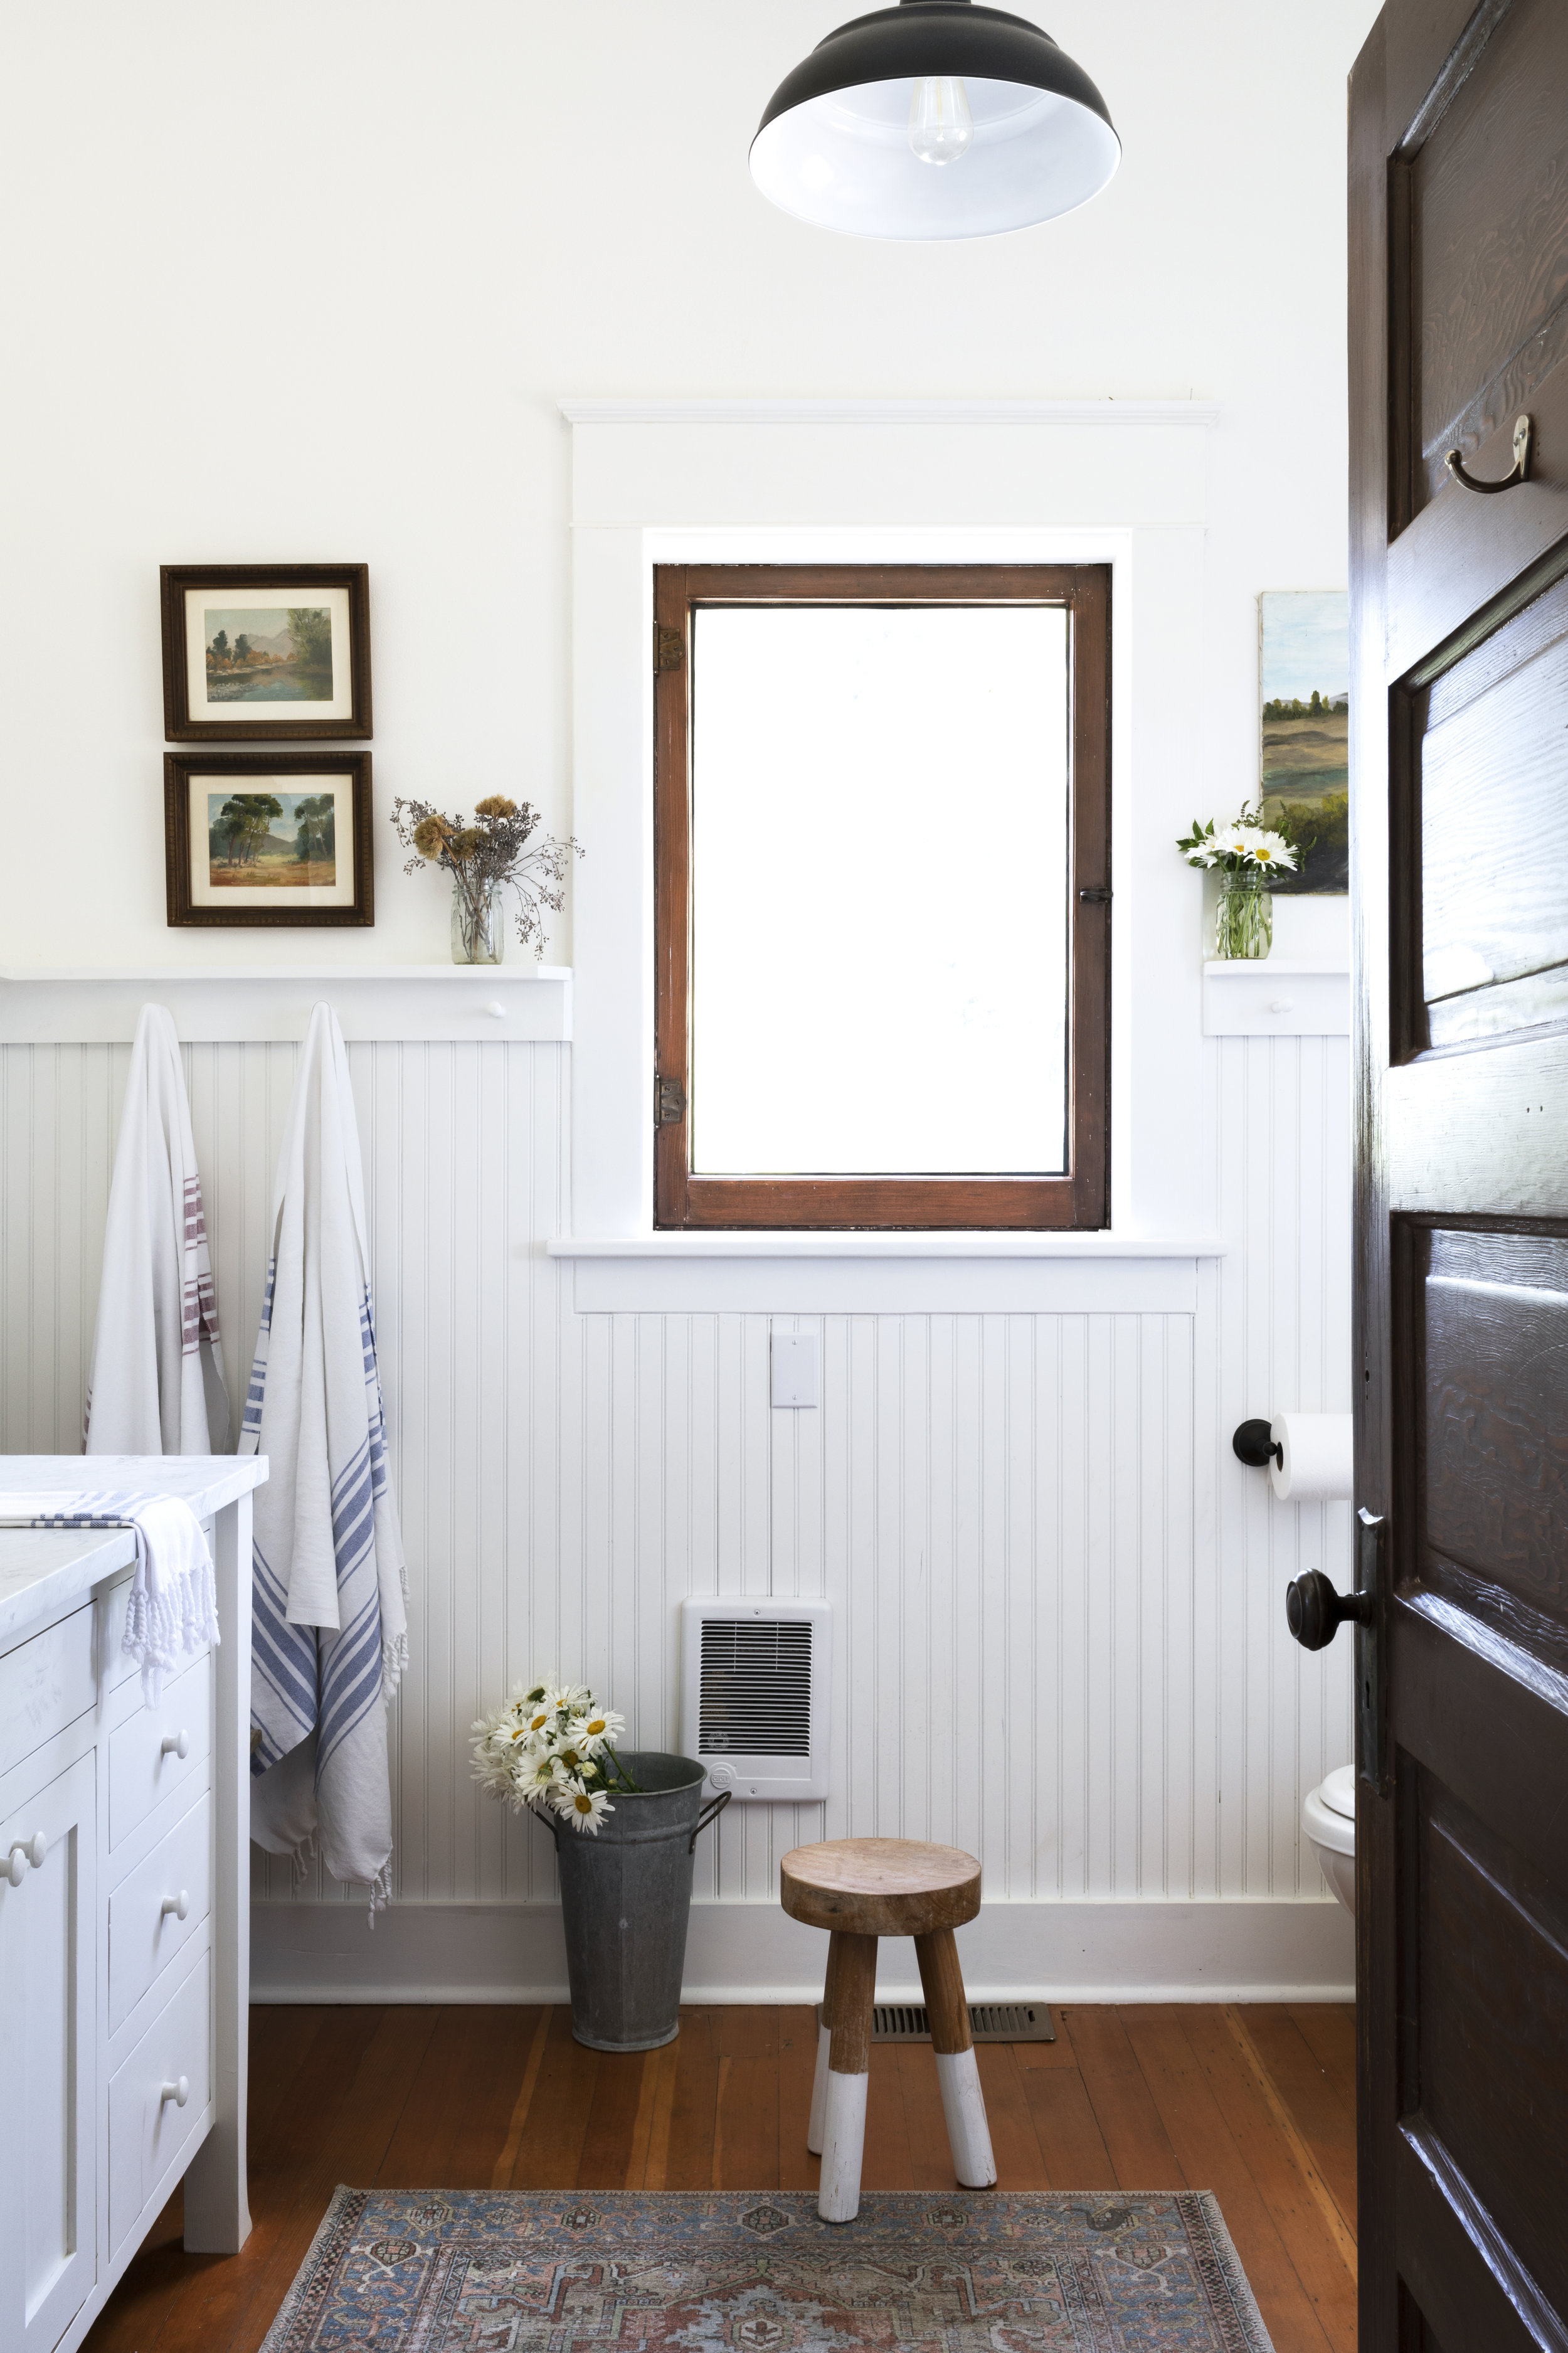 The Grit and Polish - Farmhouse Bathroom Potty Training 4.jpg